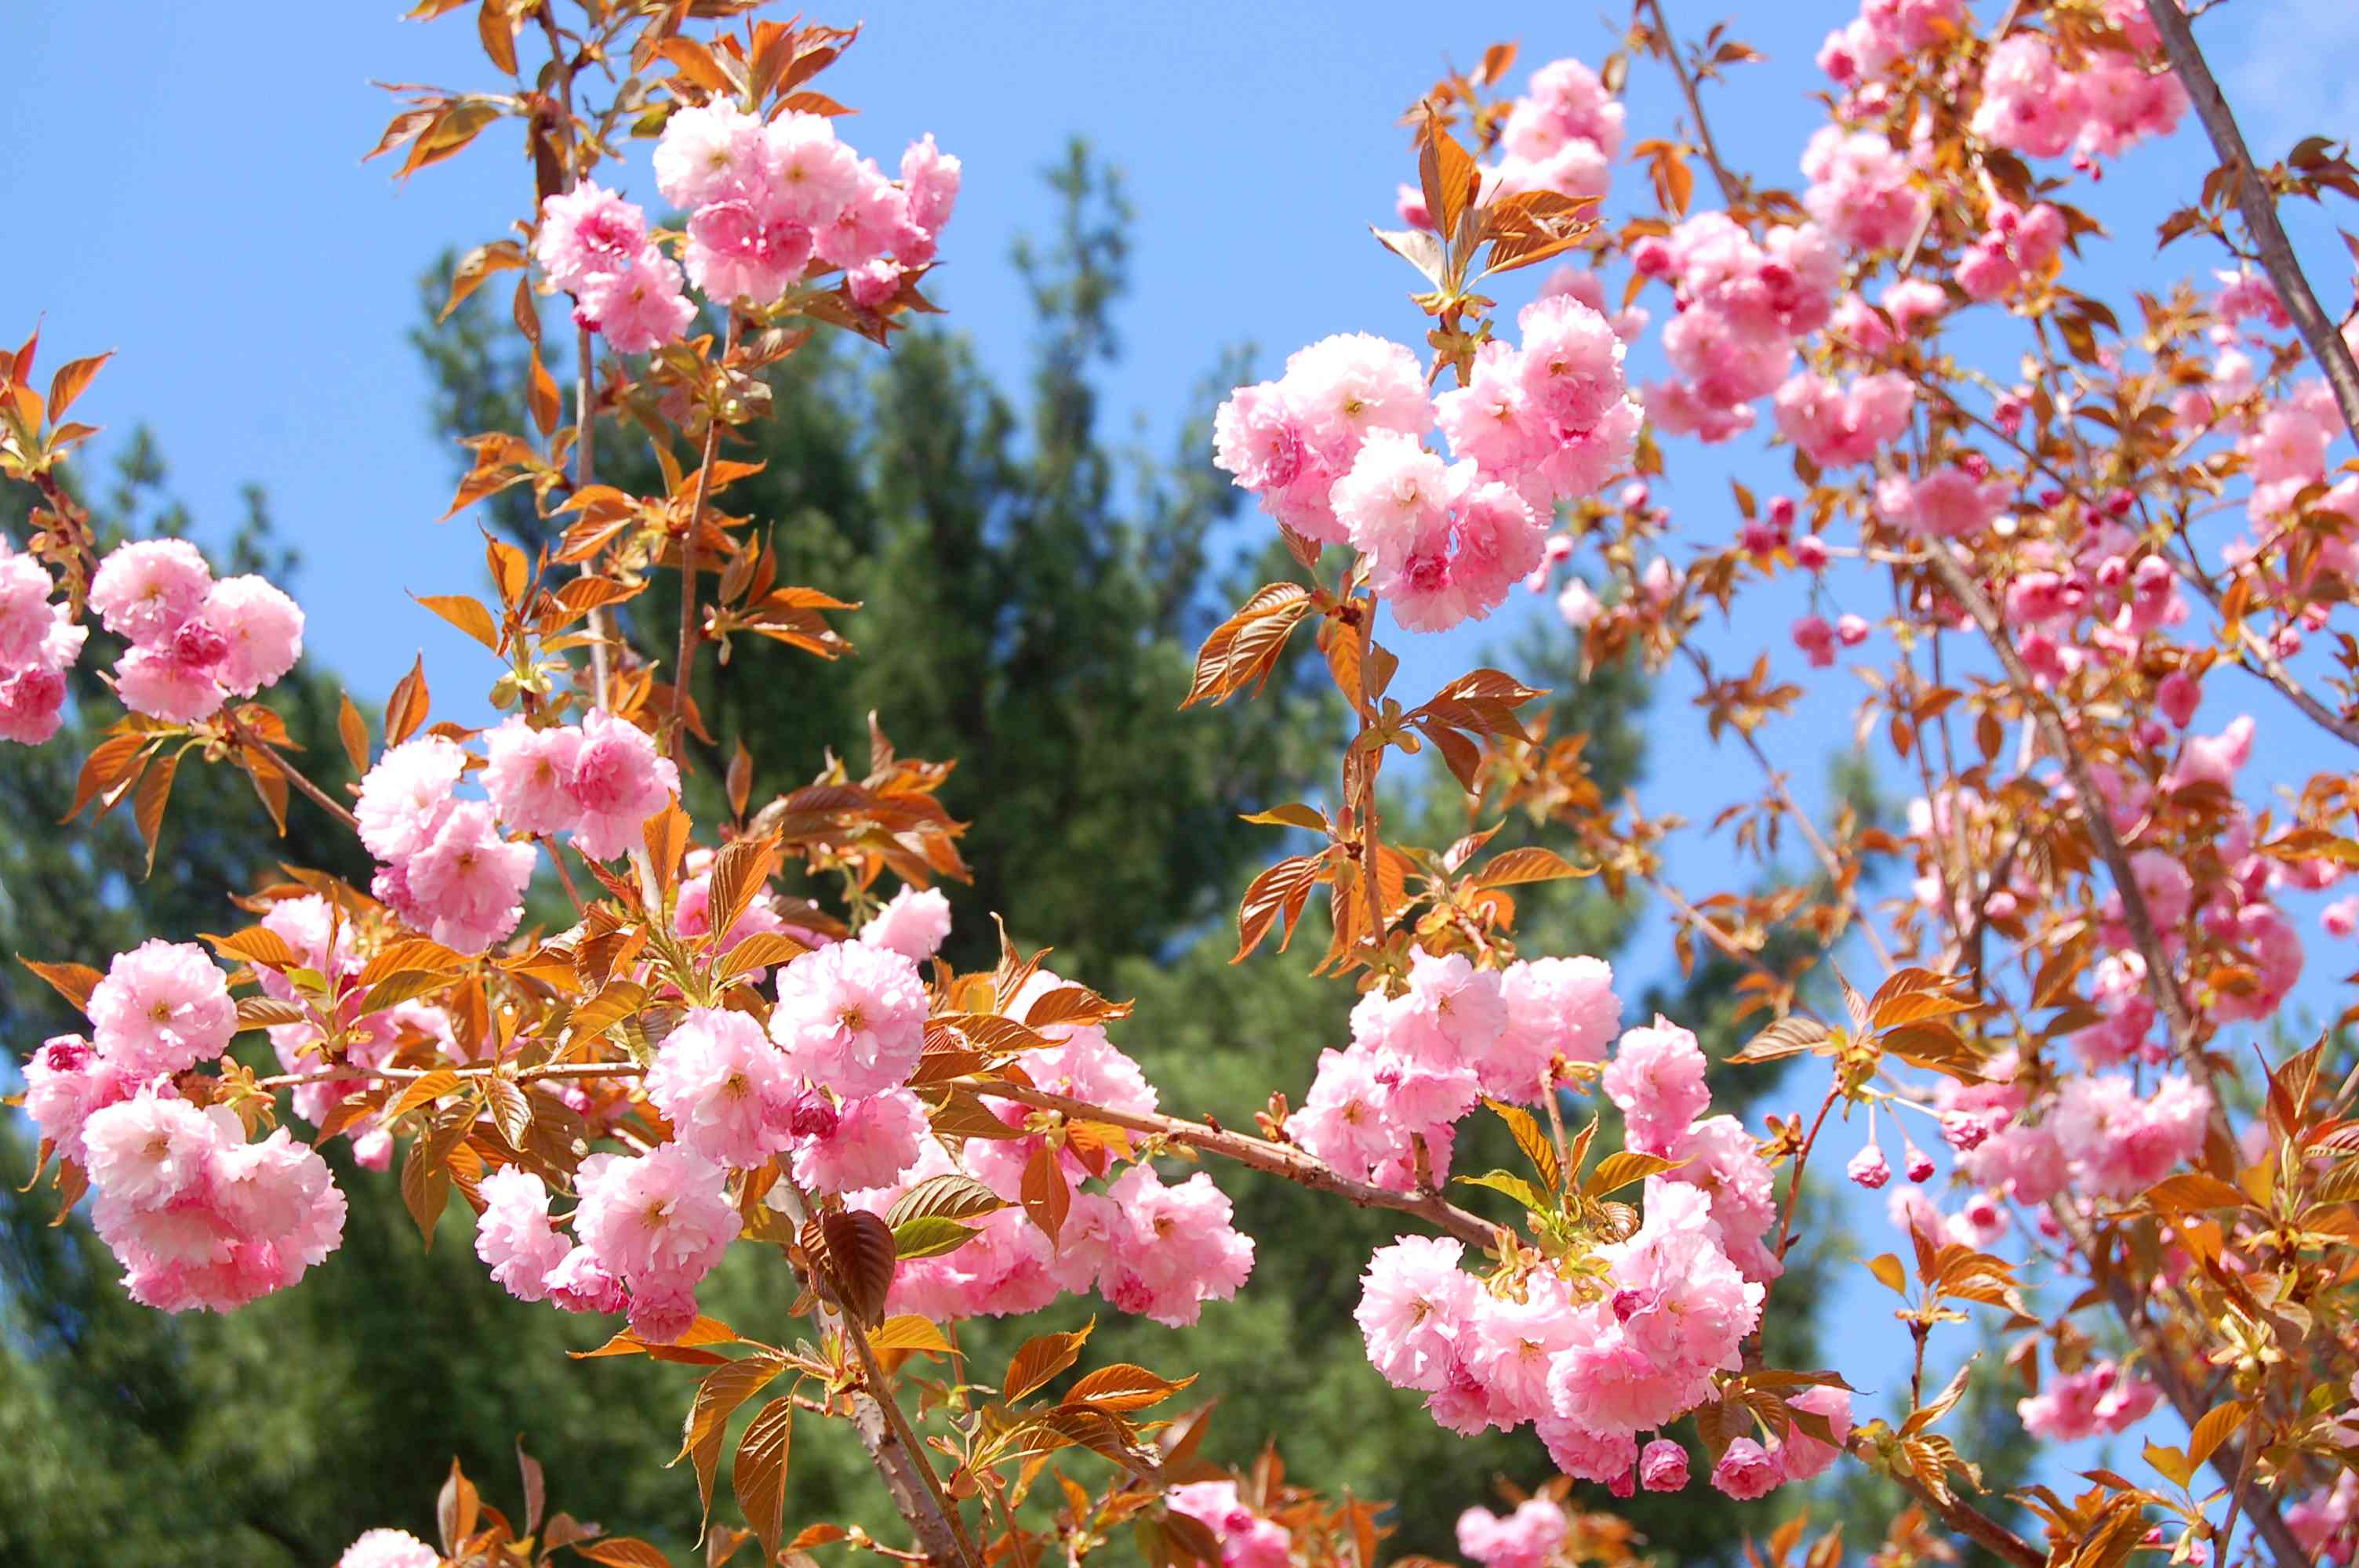 Kwanzan cherry (image) bears double pink blooms in mid-spring. It's an impressive specimen.